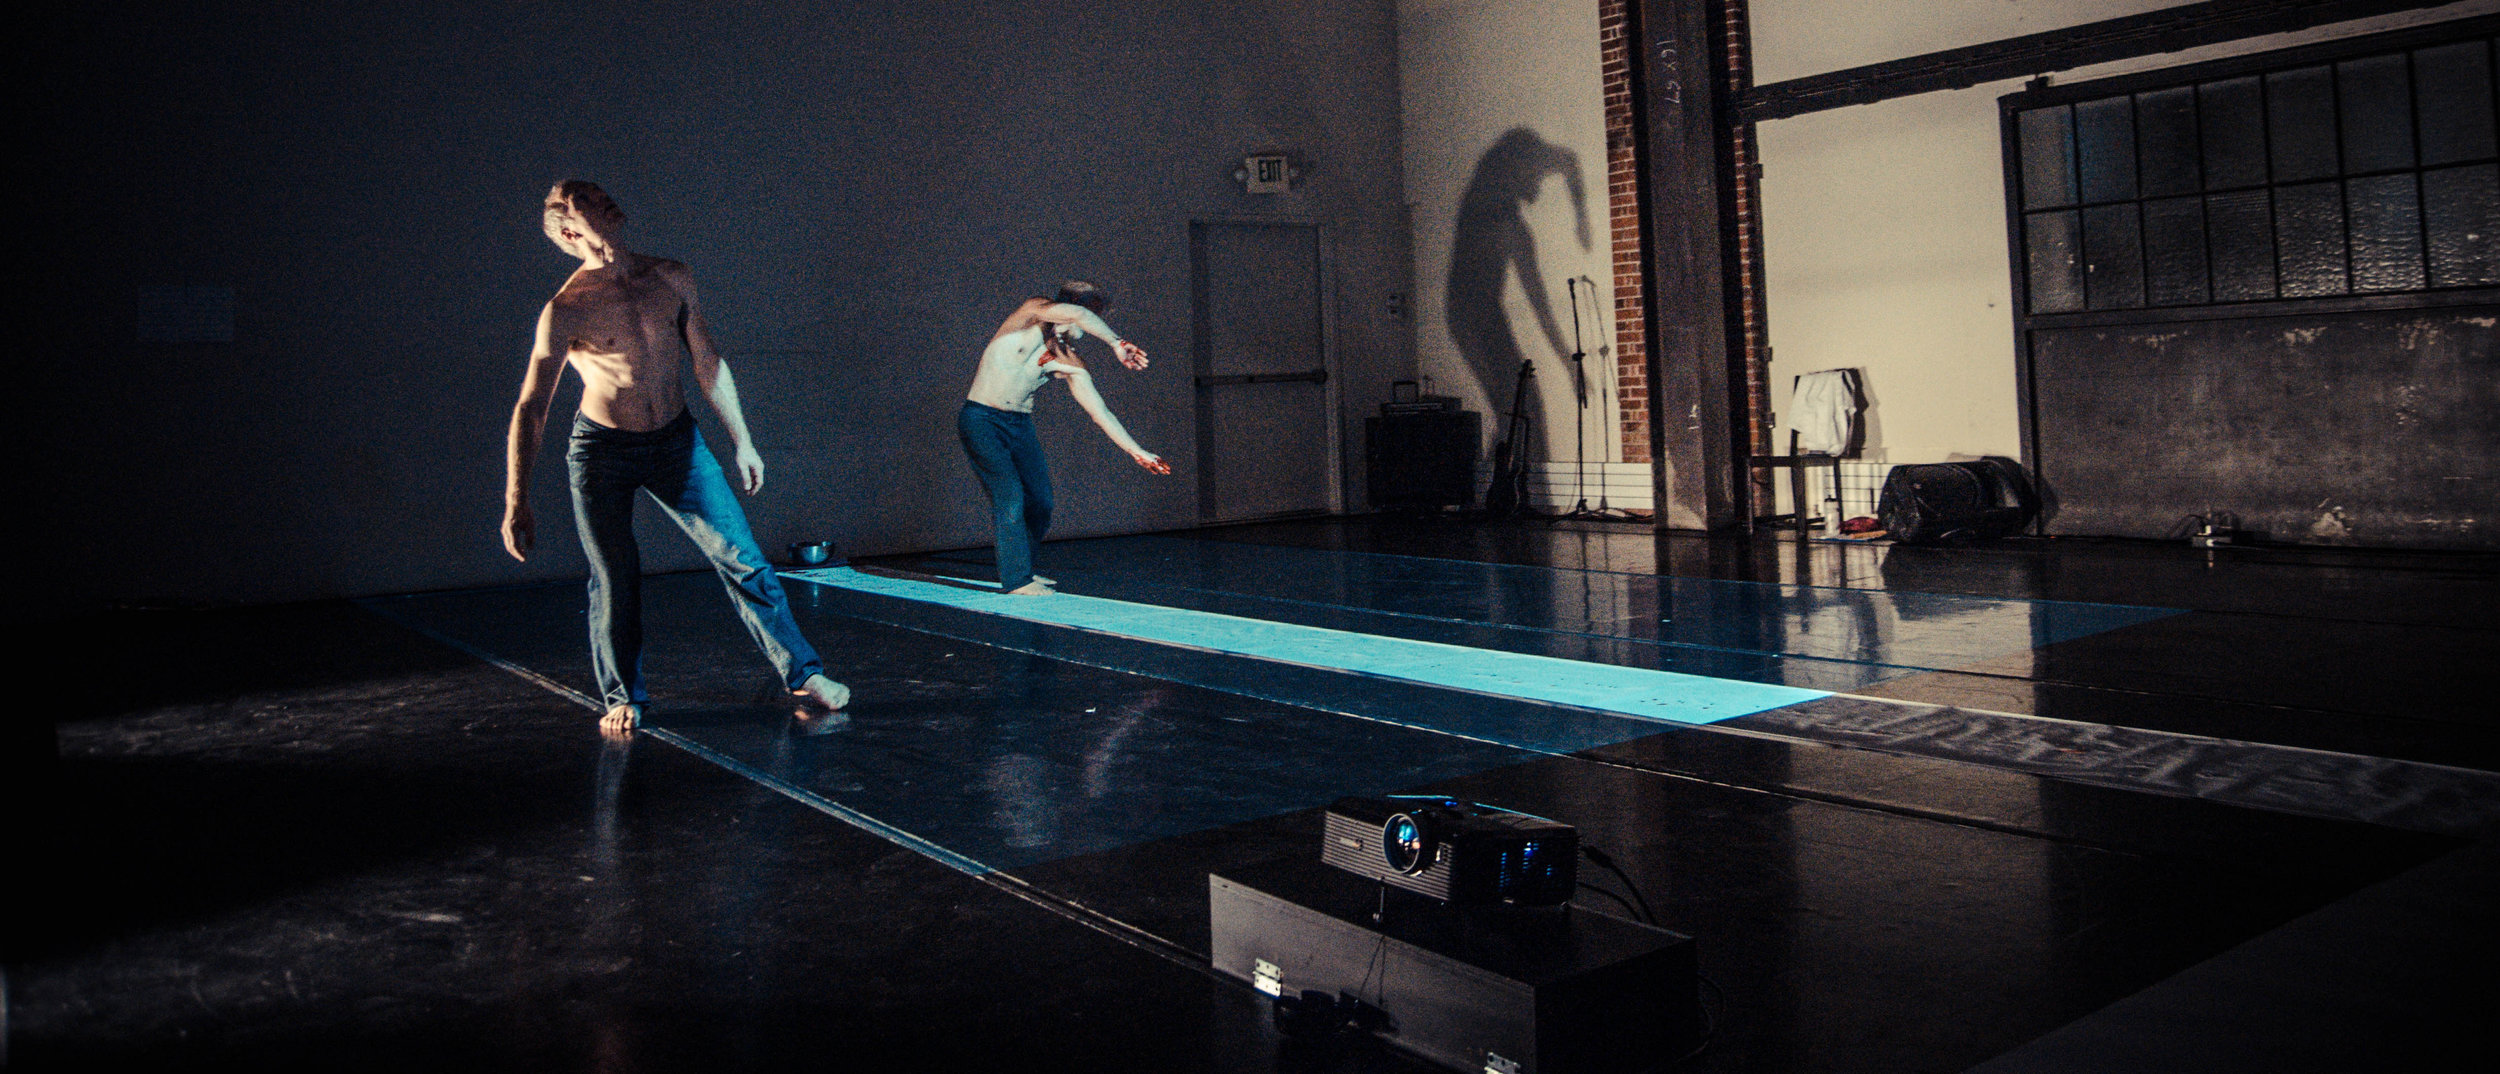 Müller, shirtless, arches upper back, while Curtis, upper back arched to side, is lit by a strip of blue light in darkened stage space. (photo: Robbie Sweeny)